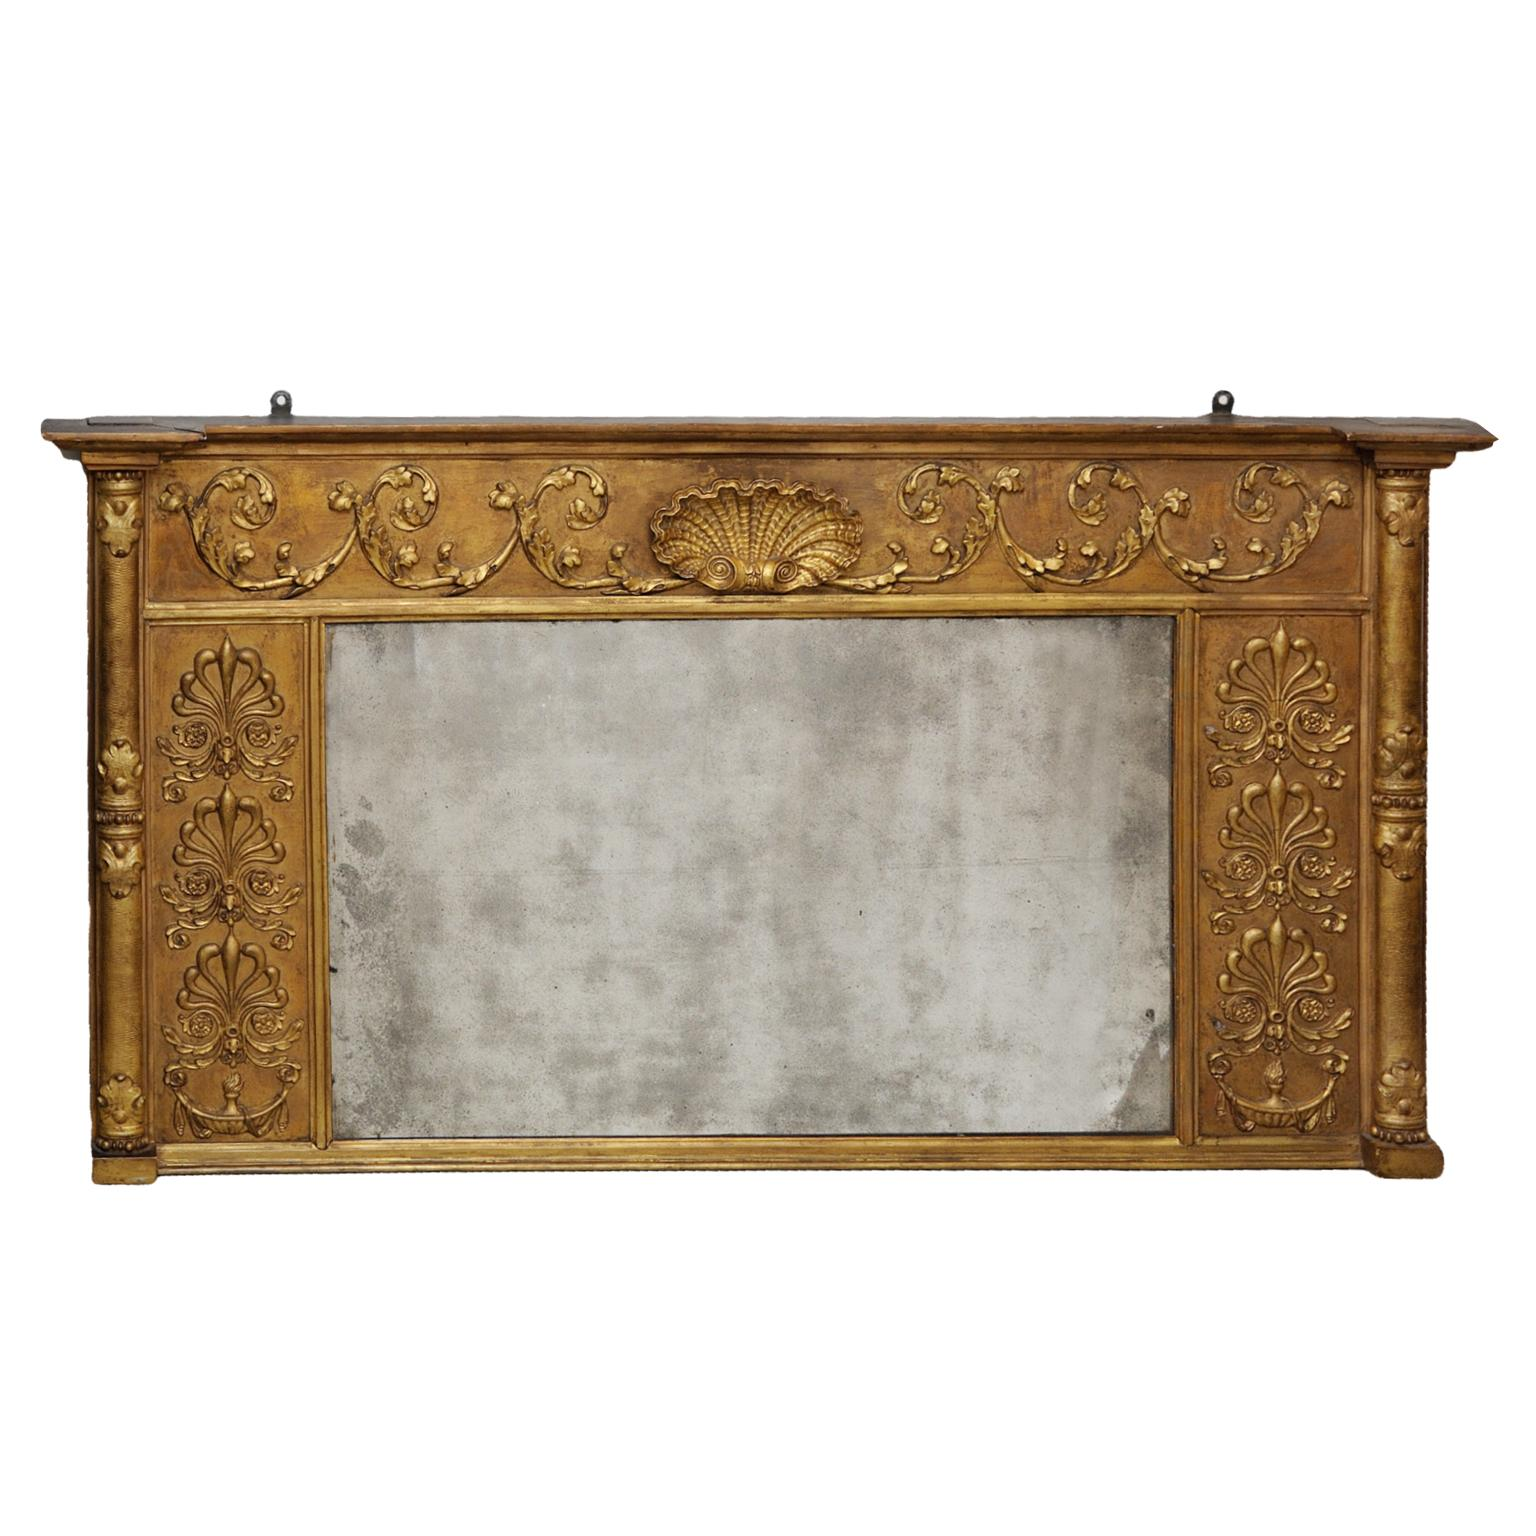 a6328a8c146e Antique and Vintage Mirrors - 15